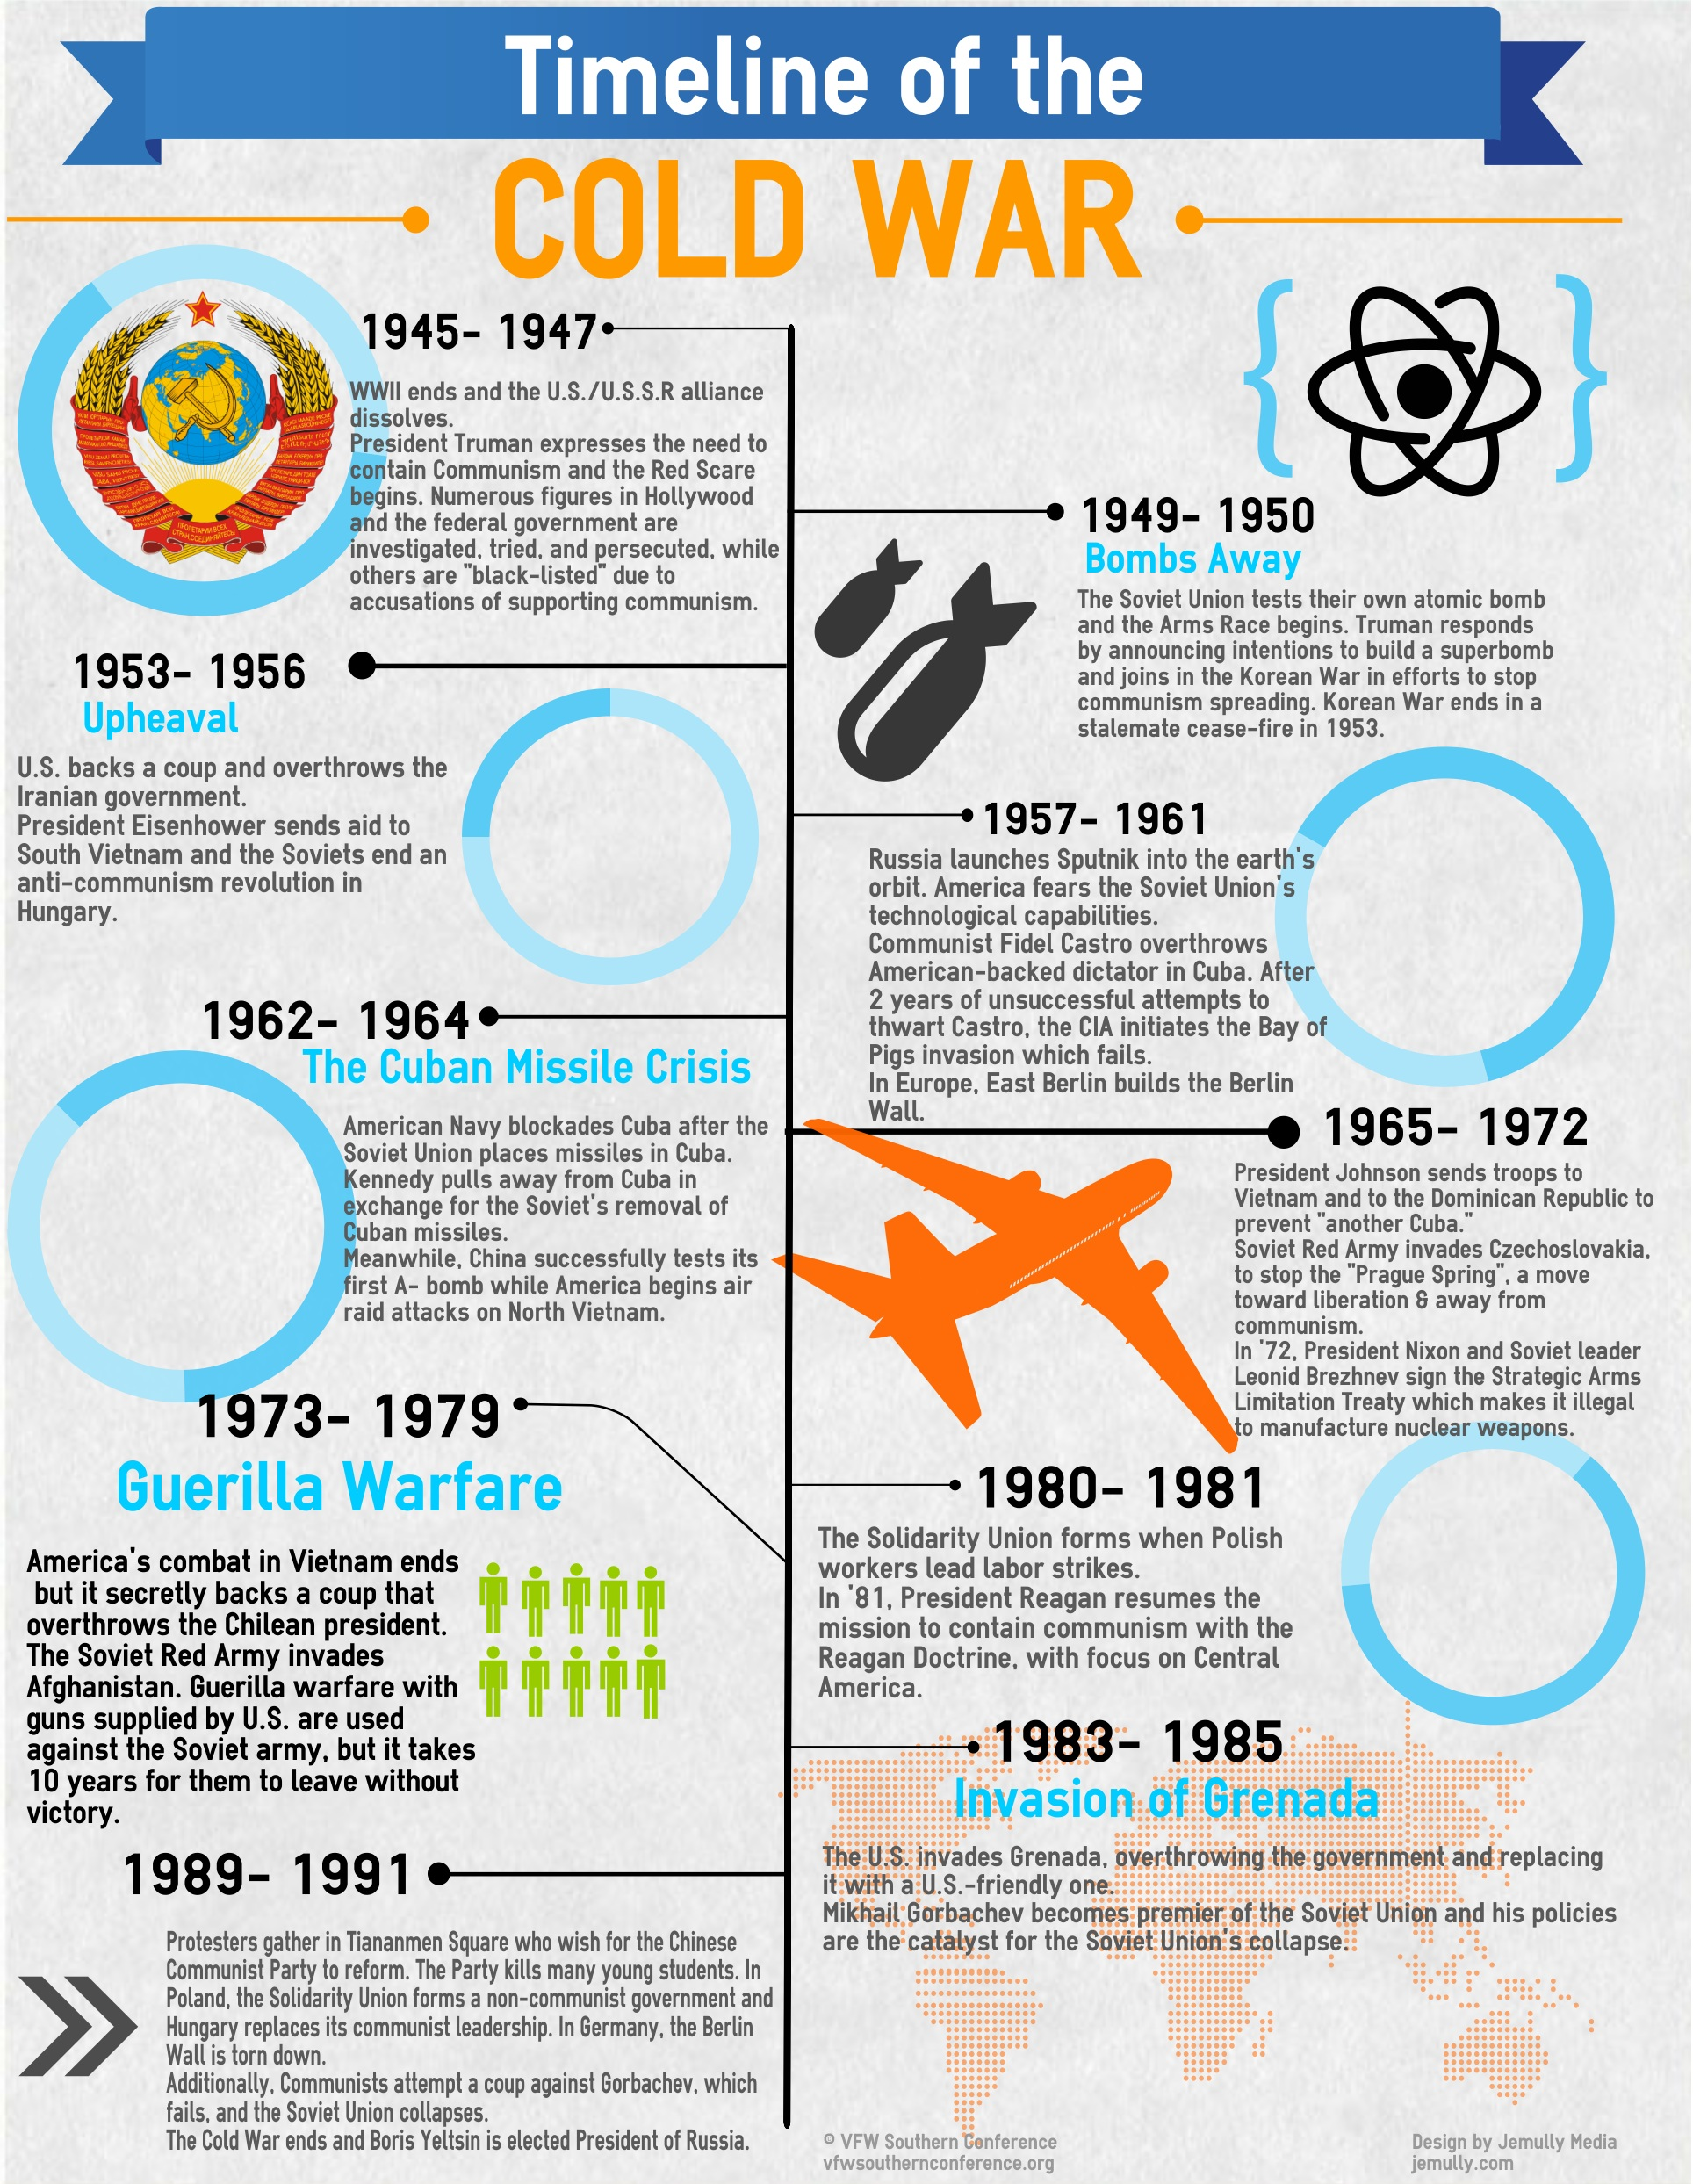 the cold war timeline infographic vfw southern conference. Black Bedroom Furniture Sets. Home Design Ideas